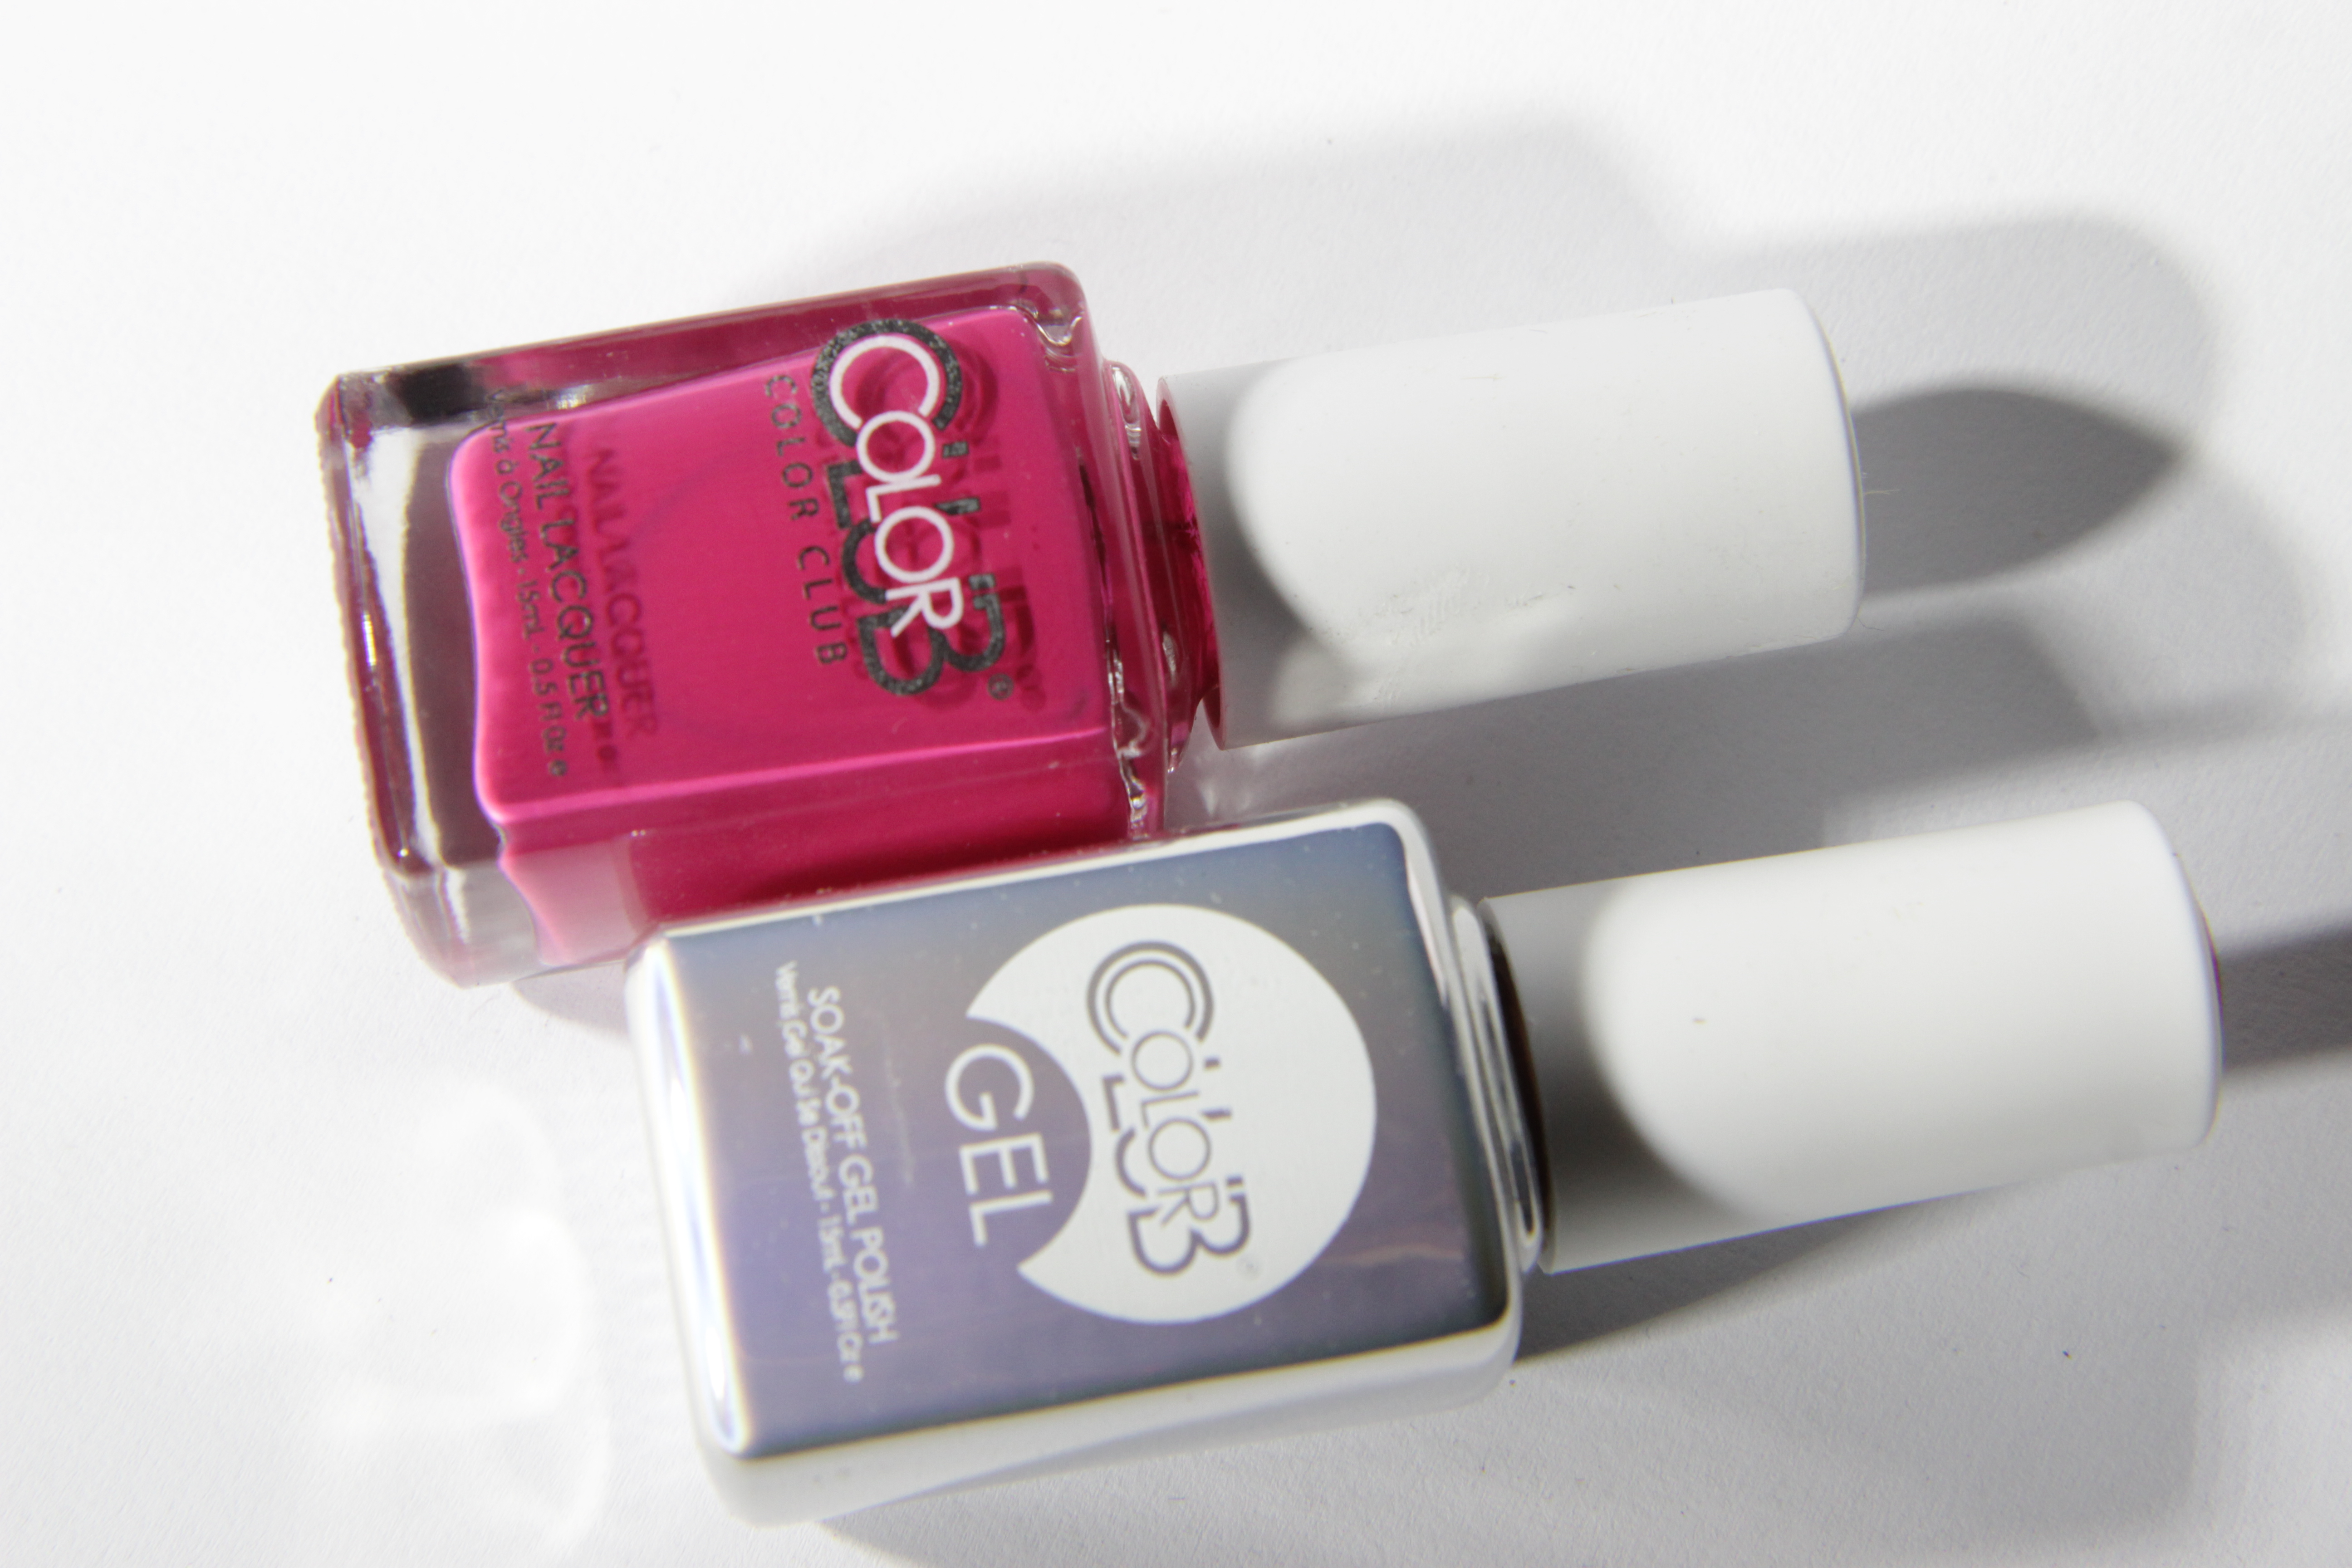 #0047 ALL OVER PINK Color Club Duo Nagellack Nail Lacquer and Soak-Off Gel Polish